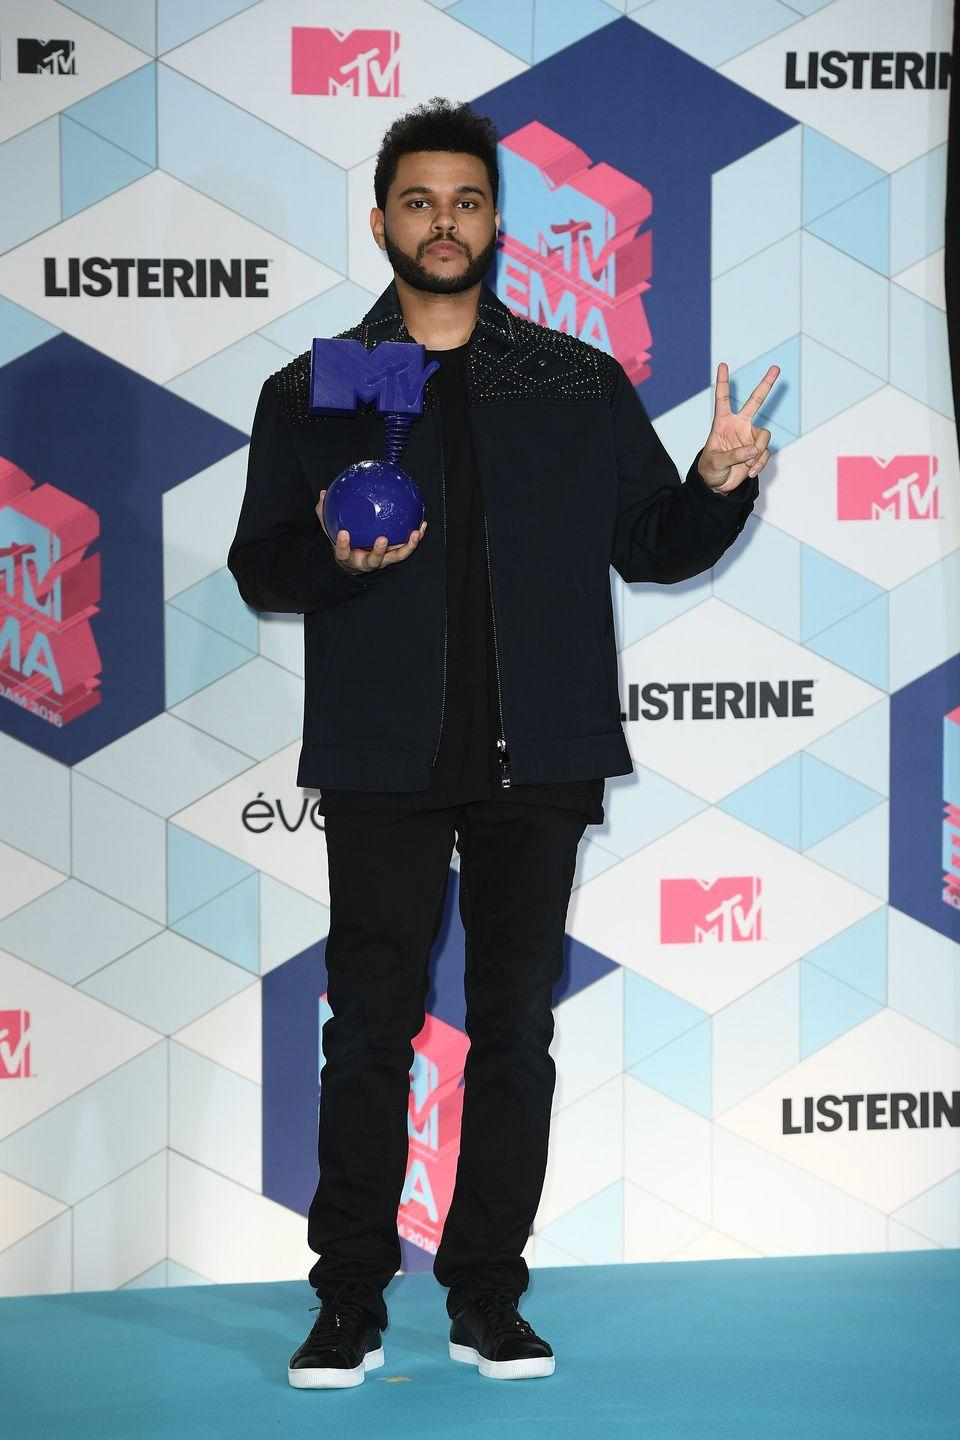 <p>Deuces to The Weeknd and his typically pared-down fit. </p>